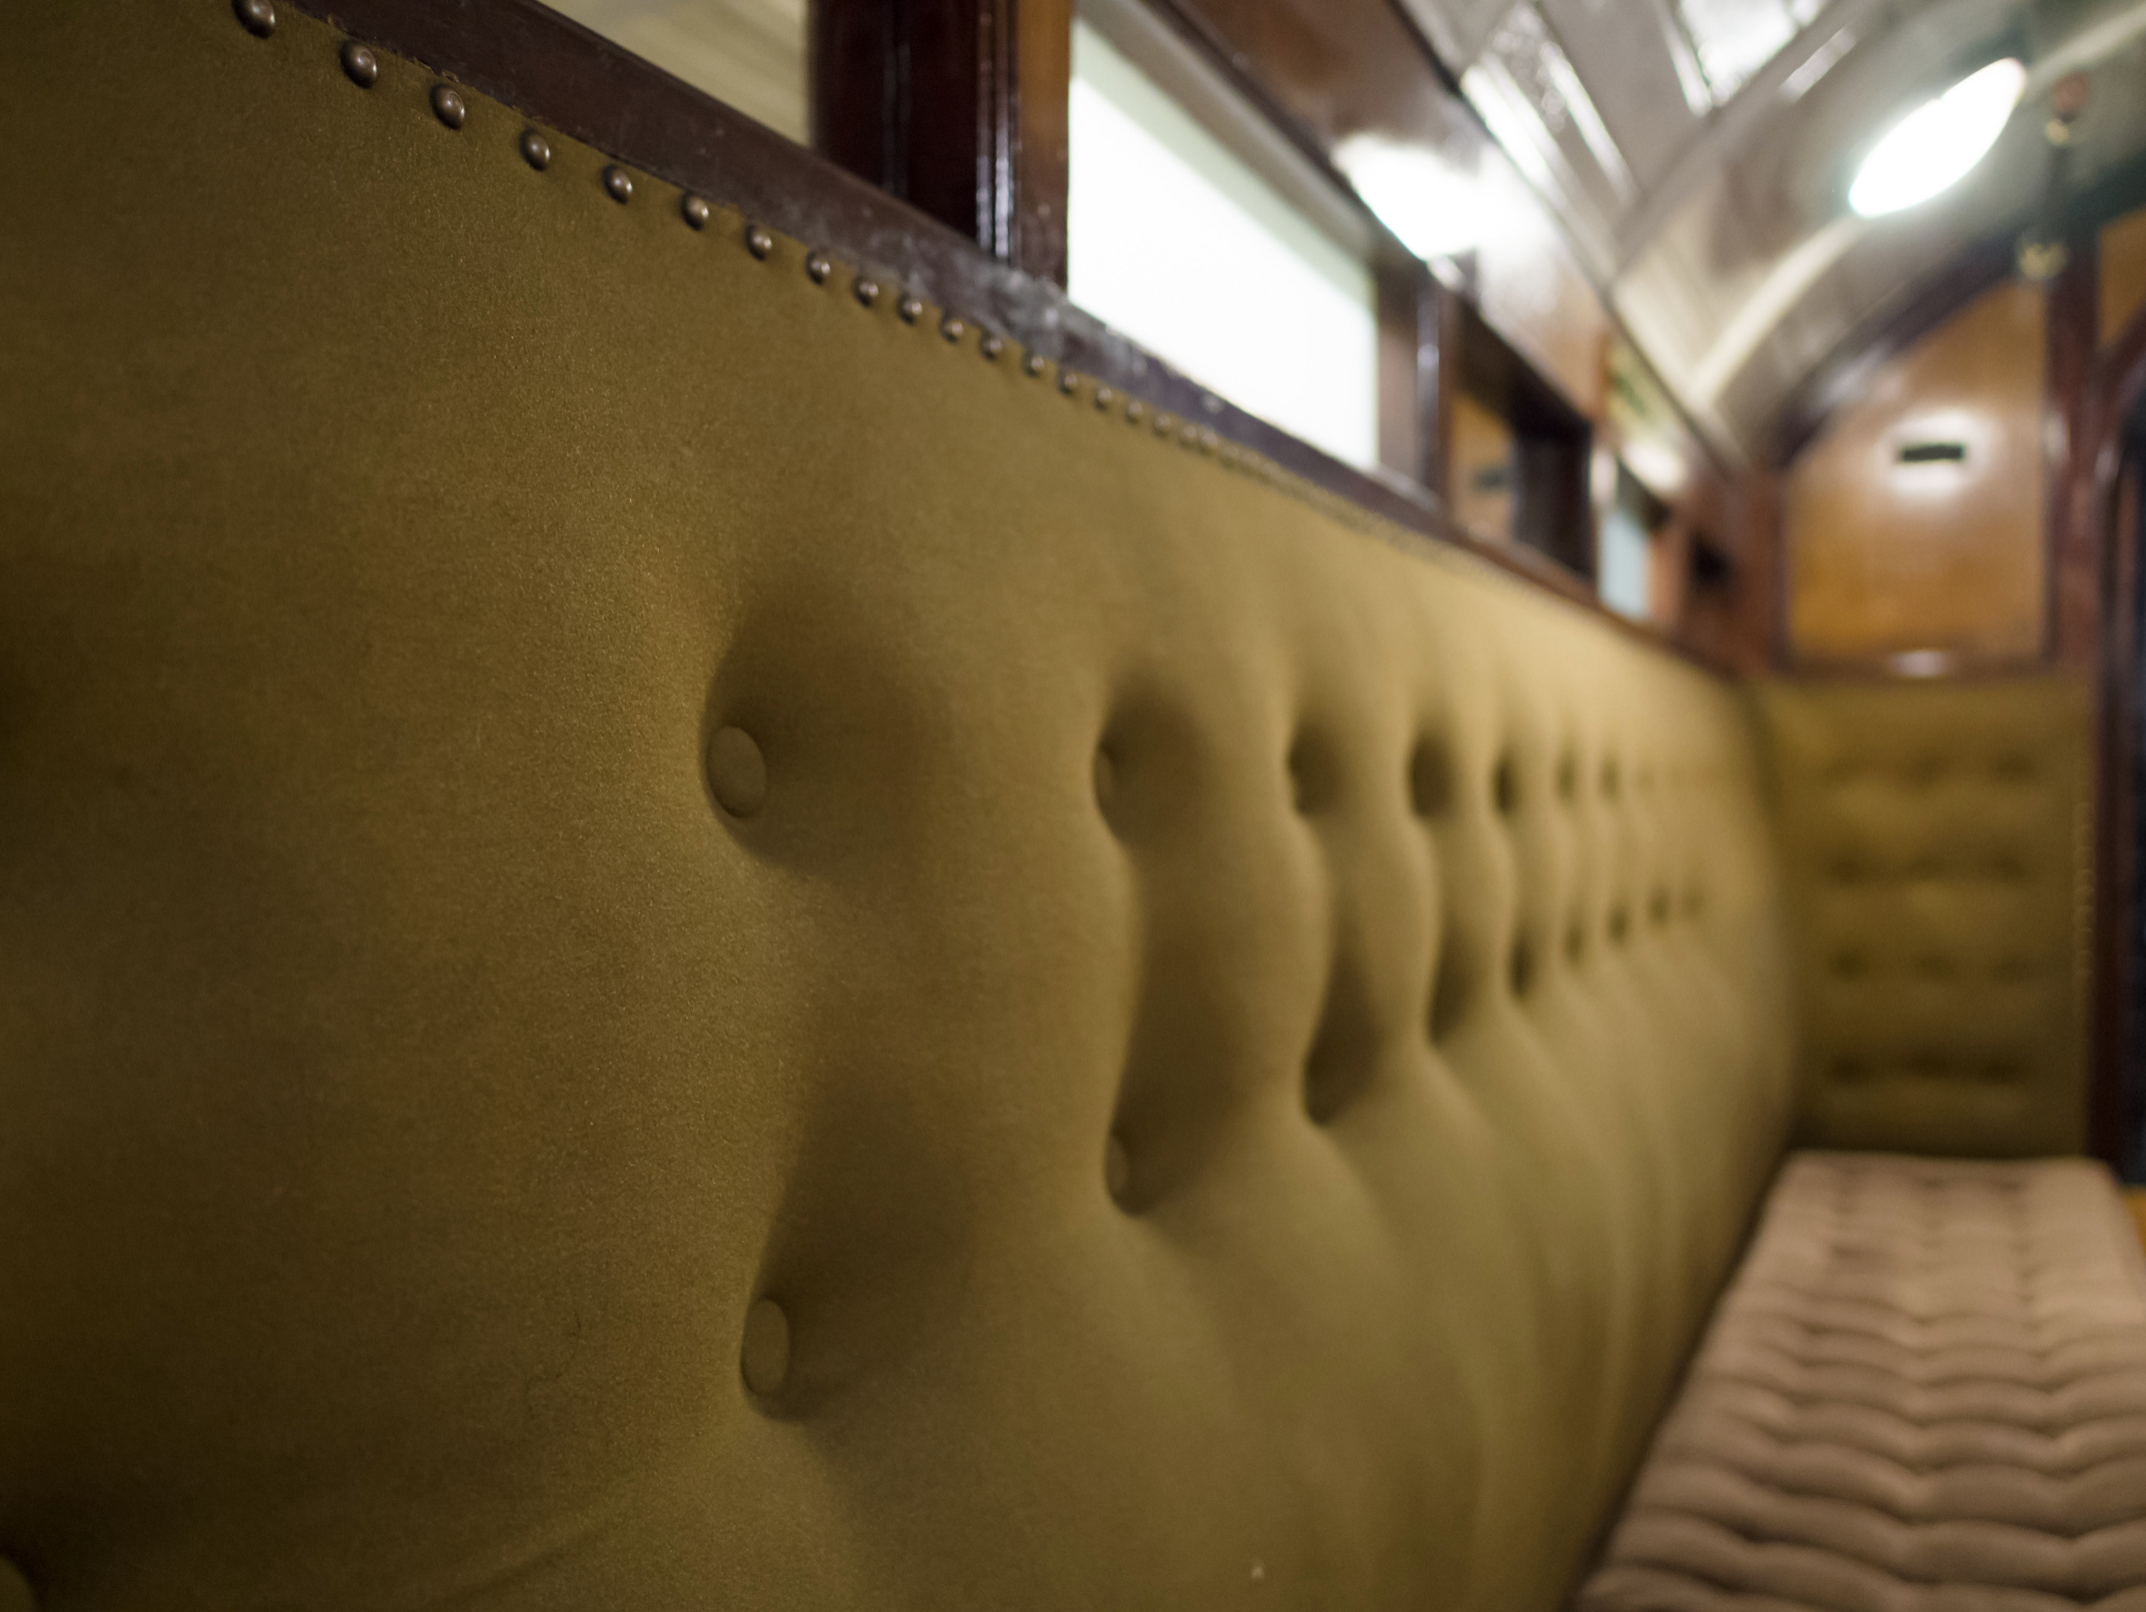 A 'padded cell' car from the City & South London Railway. (Image copyright: James Petts, via Flickr)